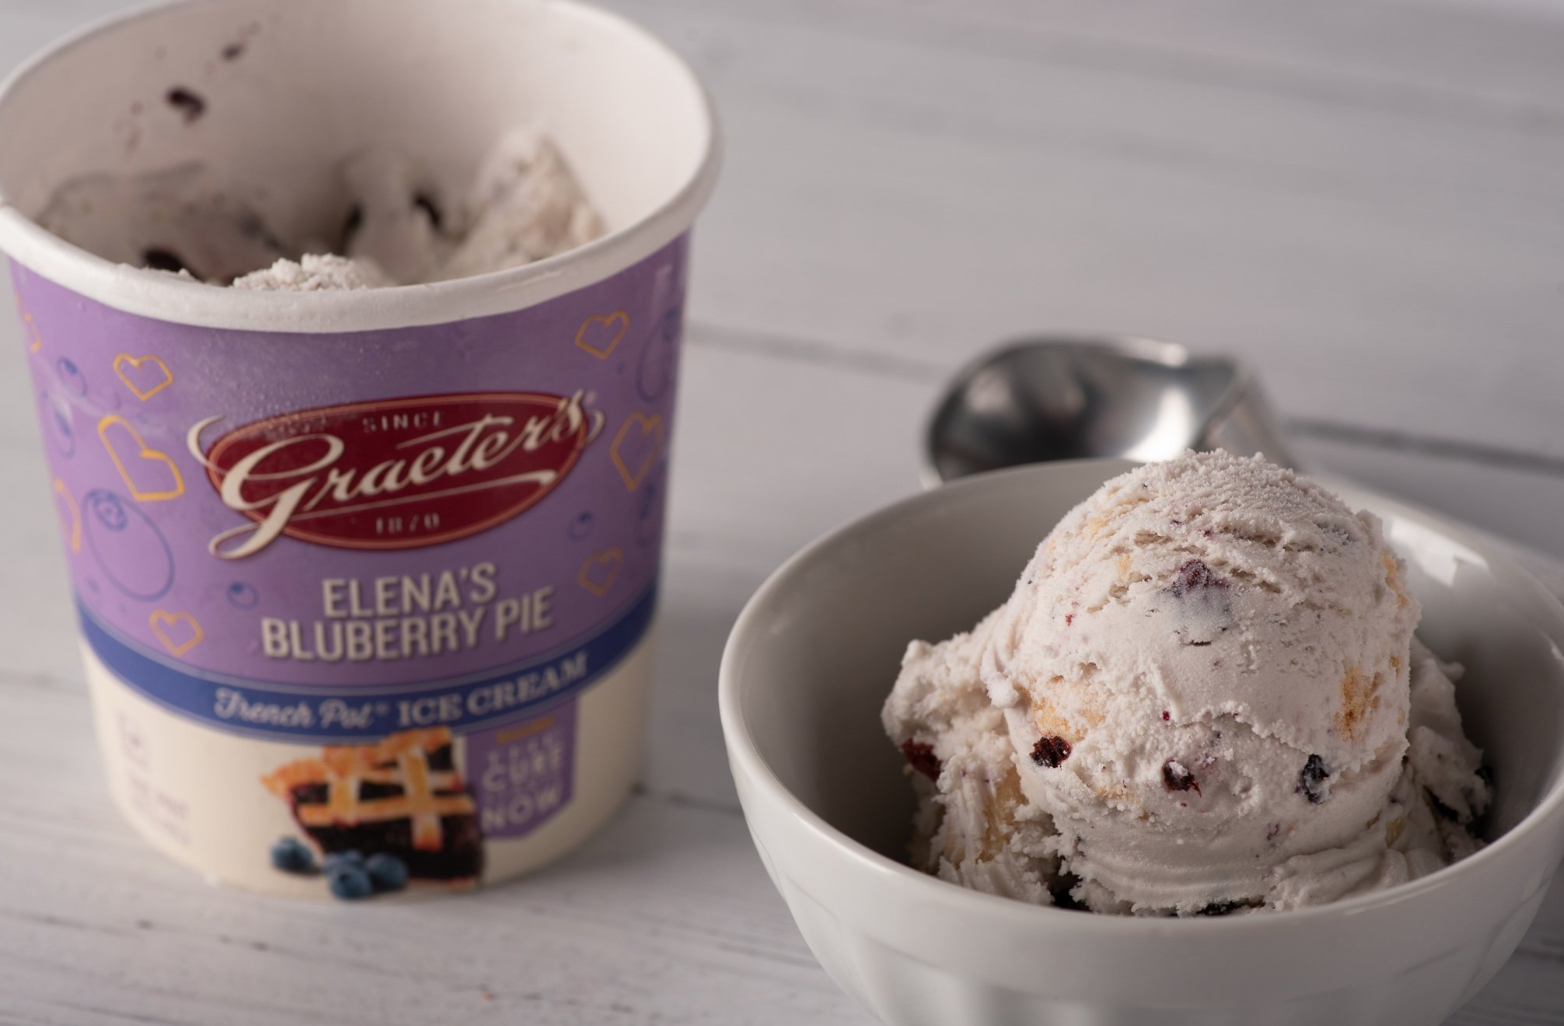 Graeter's Ice Cream's Partnership with The Cure Starts Now Continues Its Fight To Find the Homerun Cure for Childhood Cancer